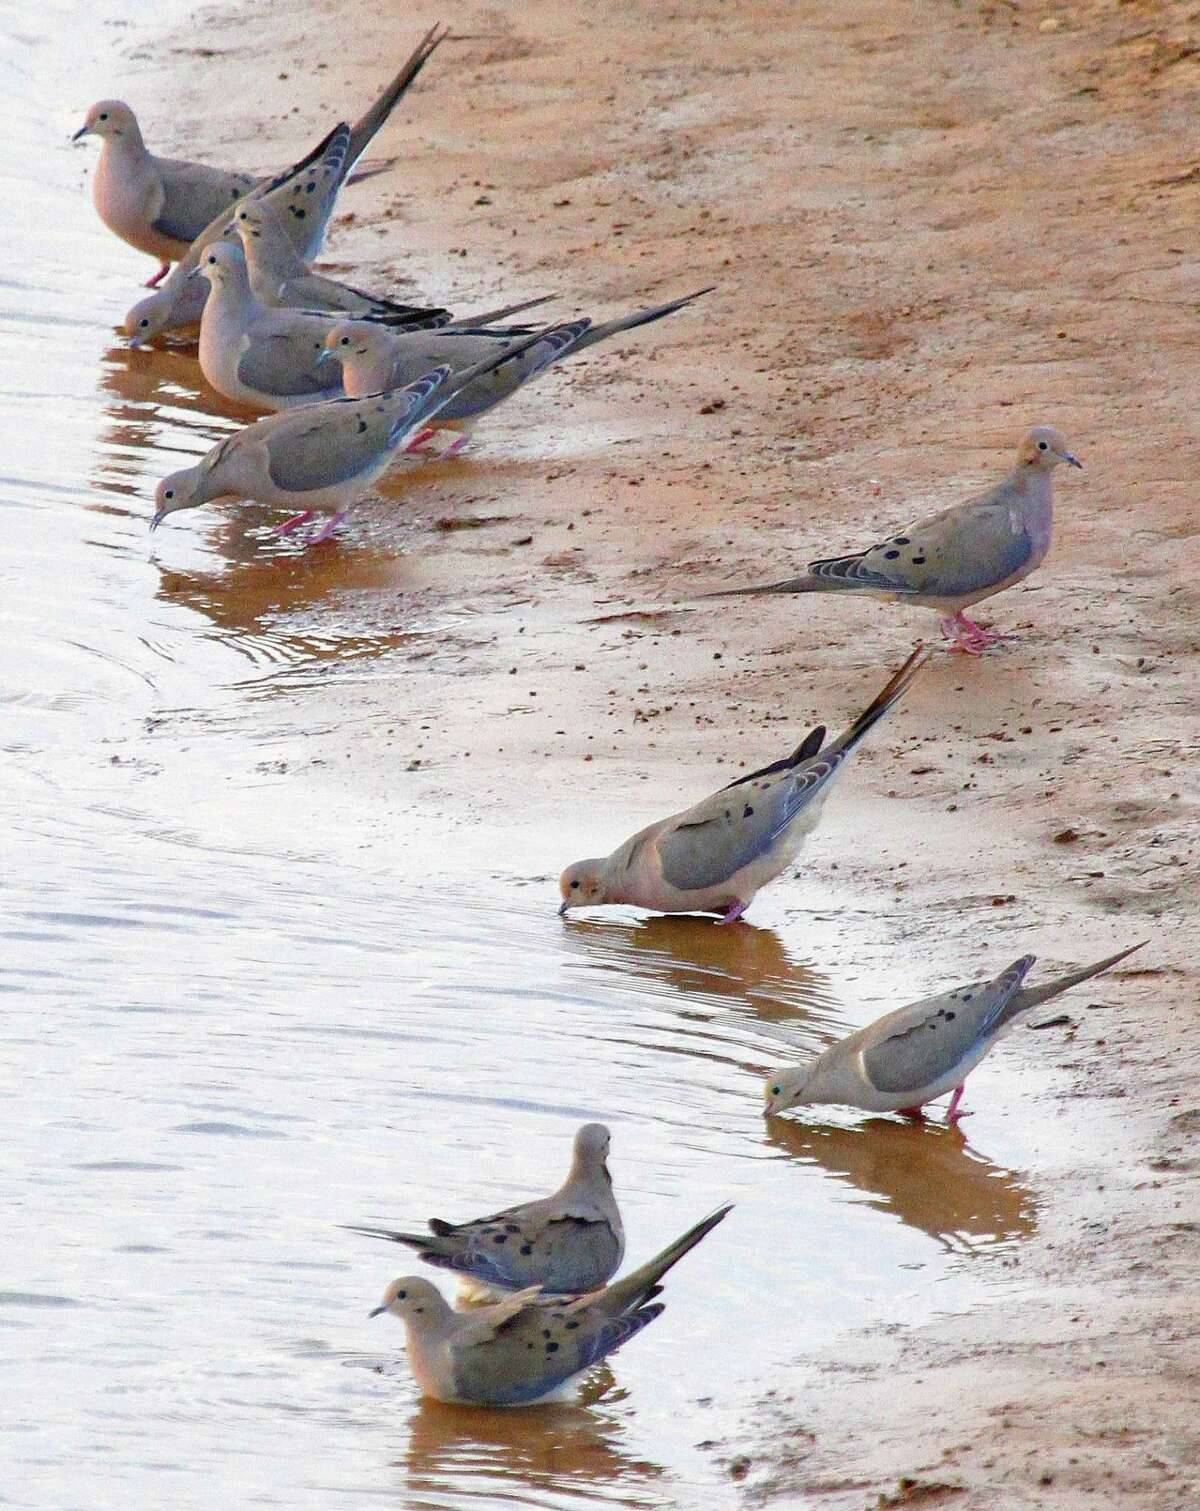 Weeks of hot, dry weather promise to have thirsty mourning doves flocking to stock tanks and farm ponds, setting up conditions for Texas wingshooters looking to enjoy a classic